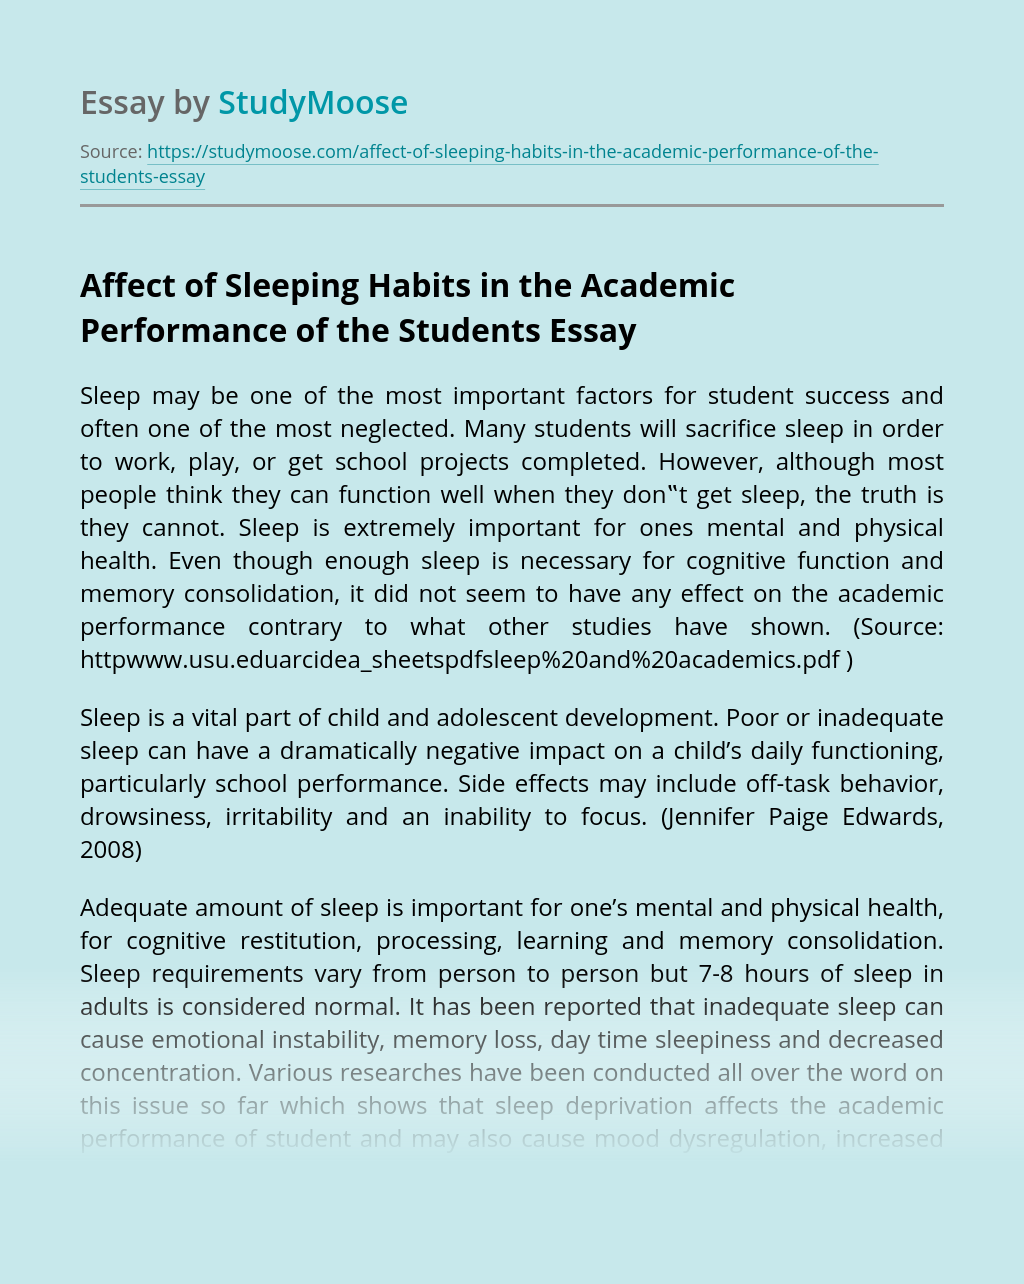 Affect of Sleeping Habits in the Academic Performance of the Students